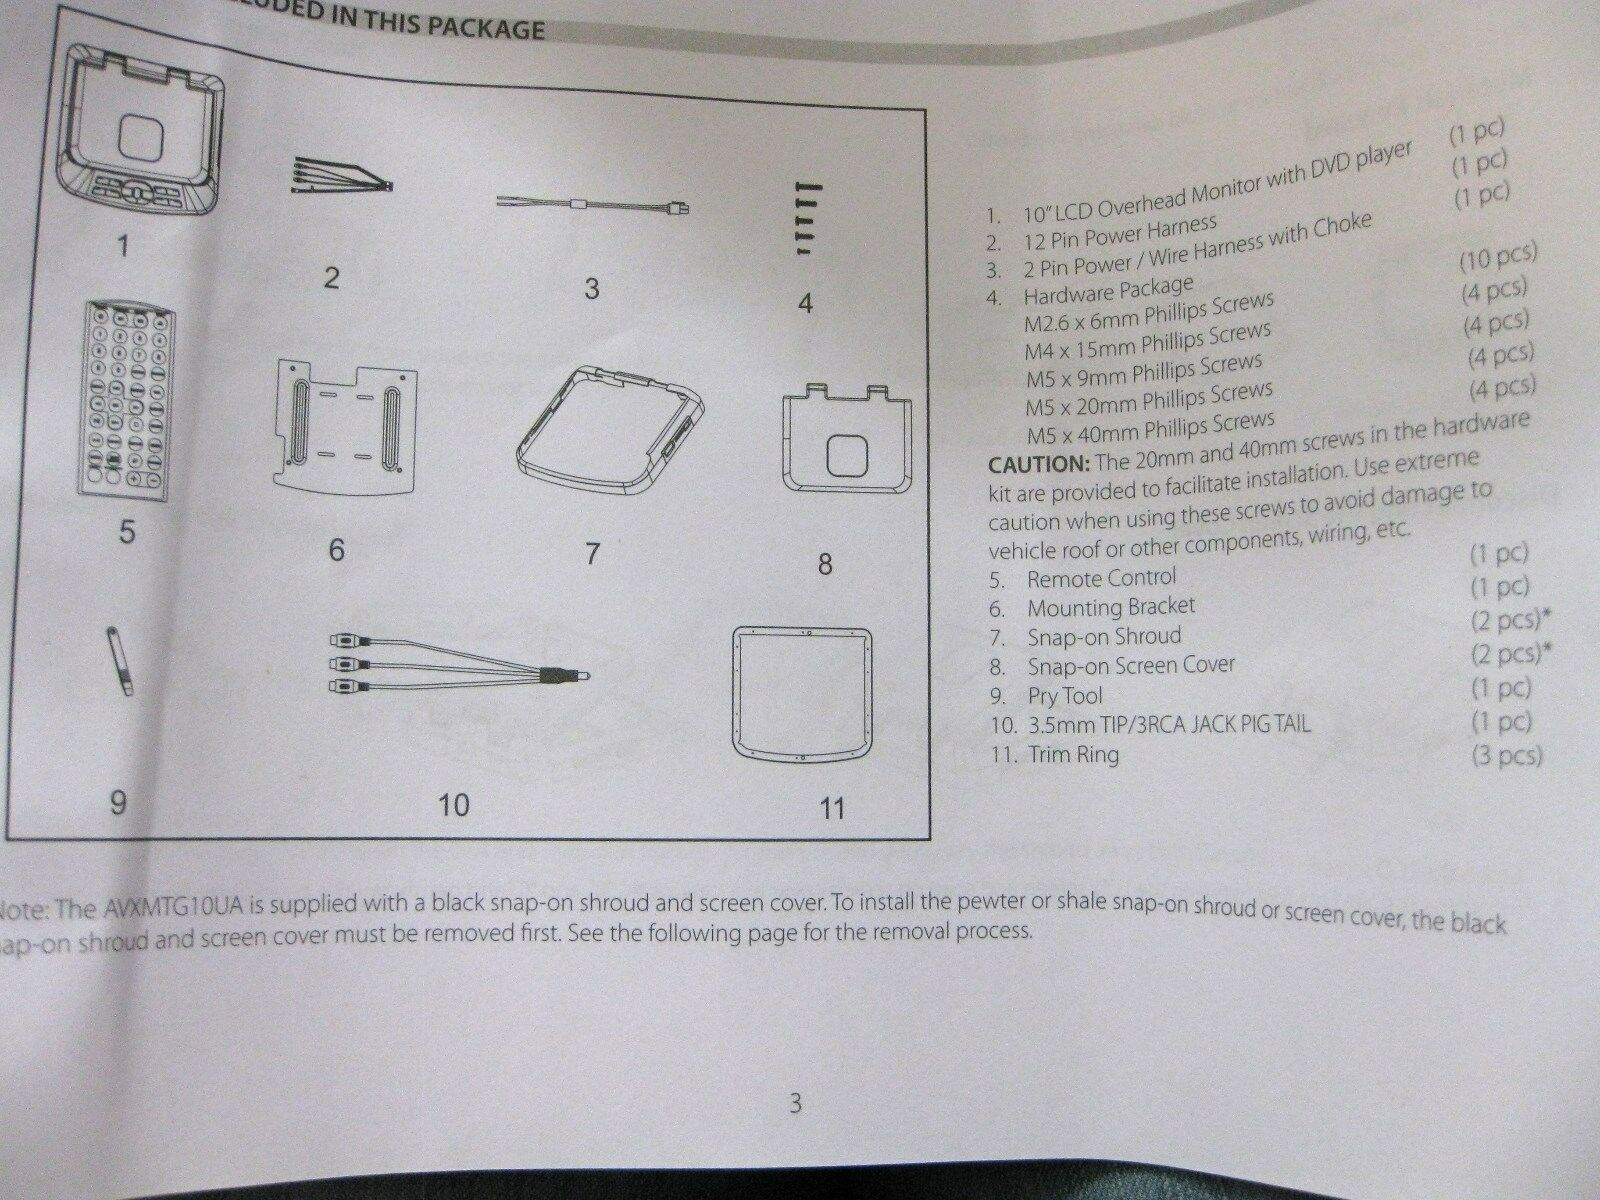 Audiovox Mtg Wiring Diagram Schematic Diagrams Prestige Snap On Screen Cover Grey Model 17201150 Fits The Remote Car Starter